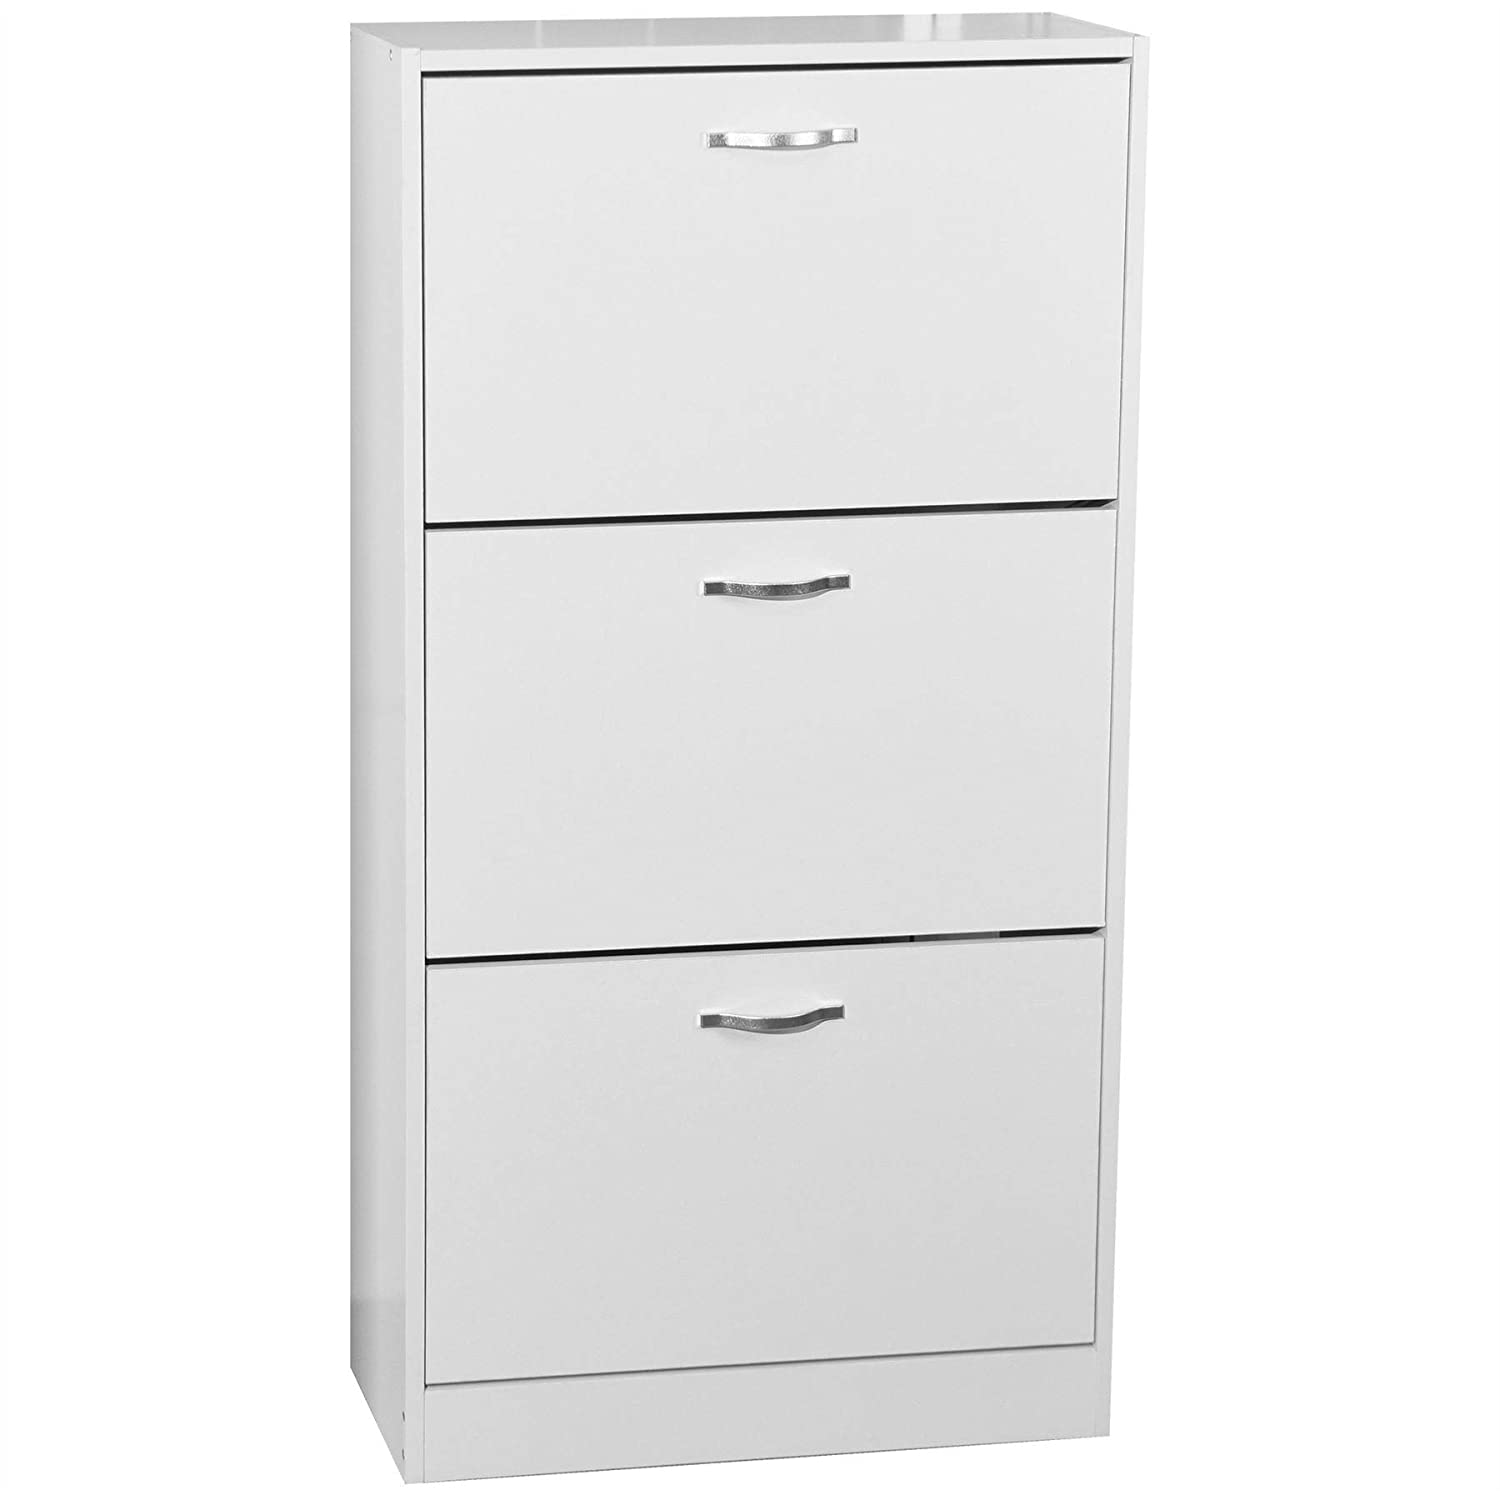 Home Discount 3 Drawer Shoe Cabinet Cupboard Shoe Storage Organiser Pull Down Wooden Furniture Unit White